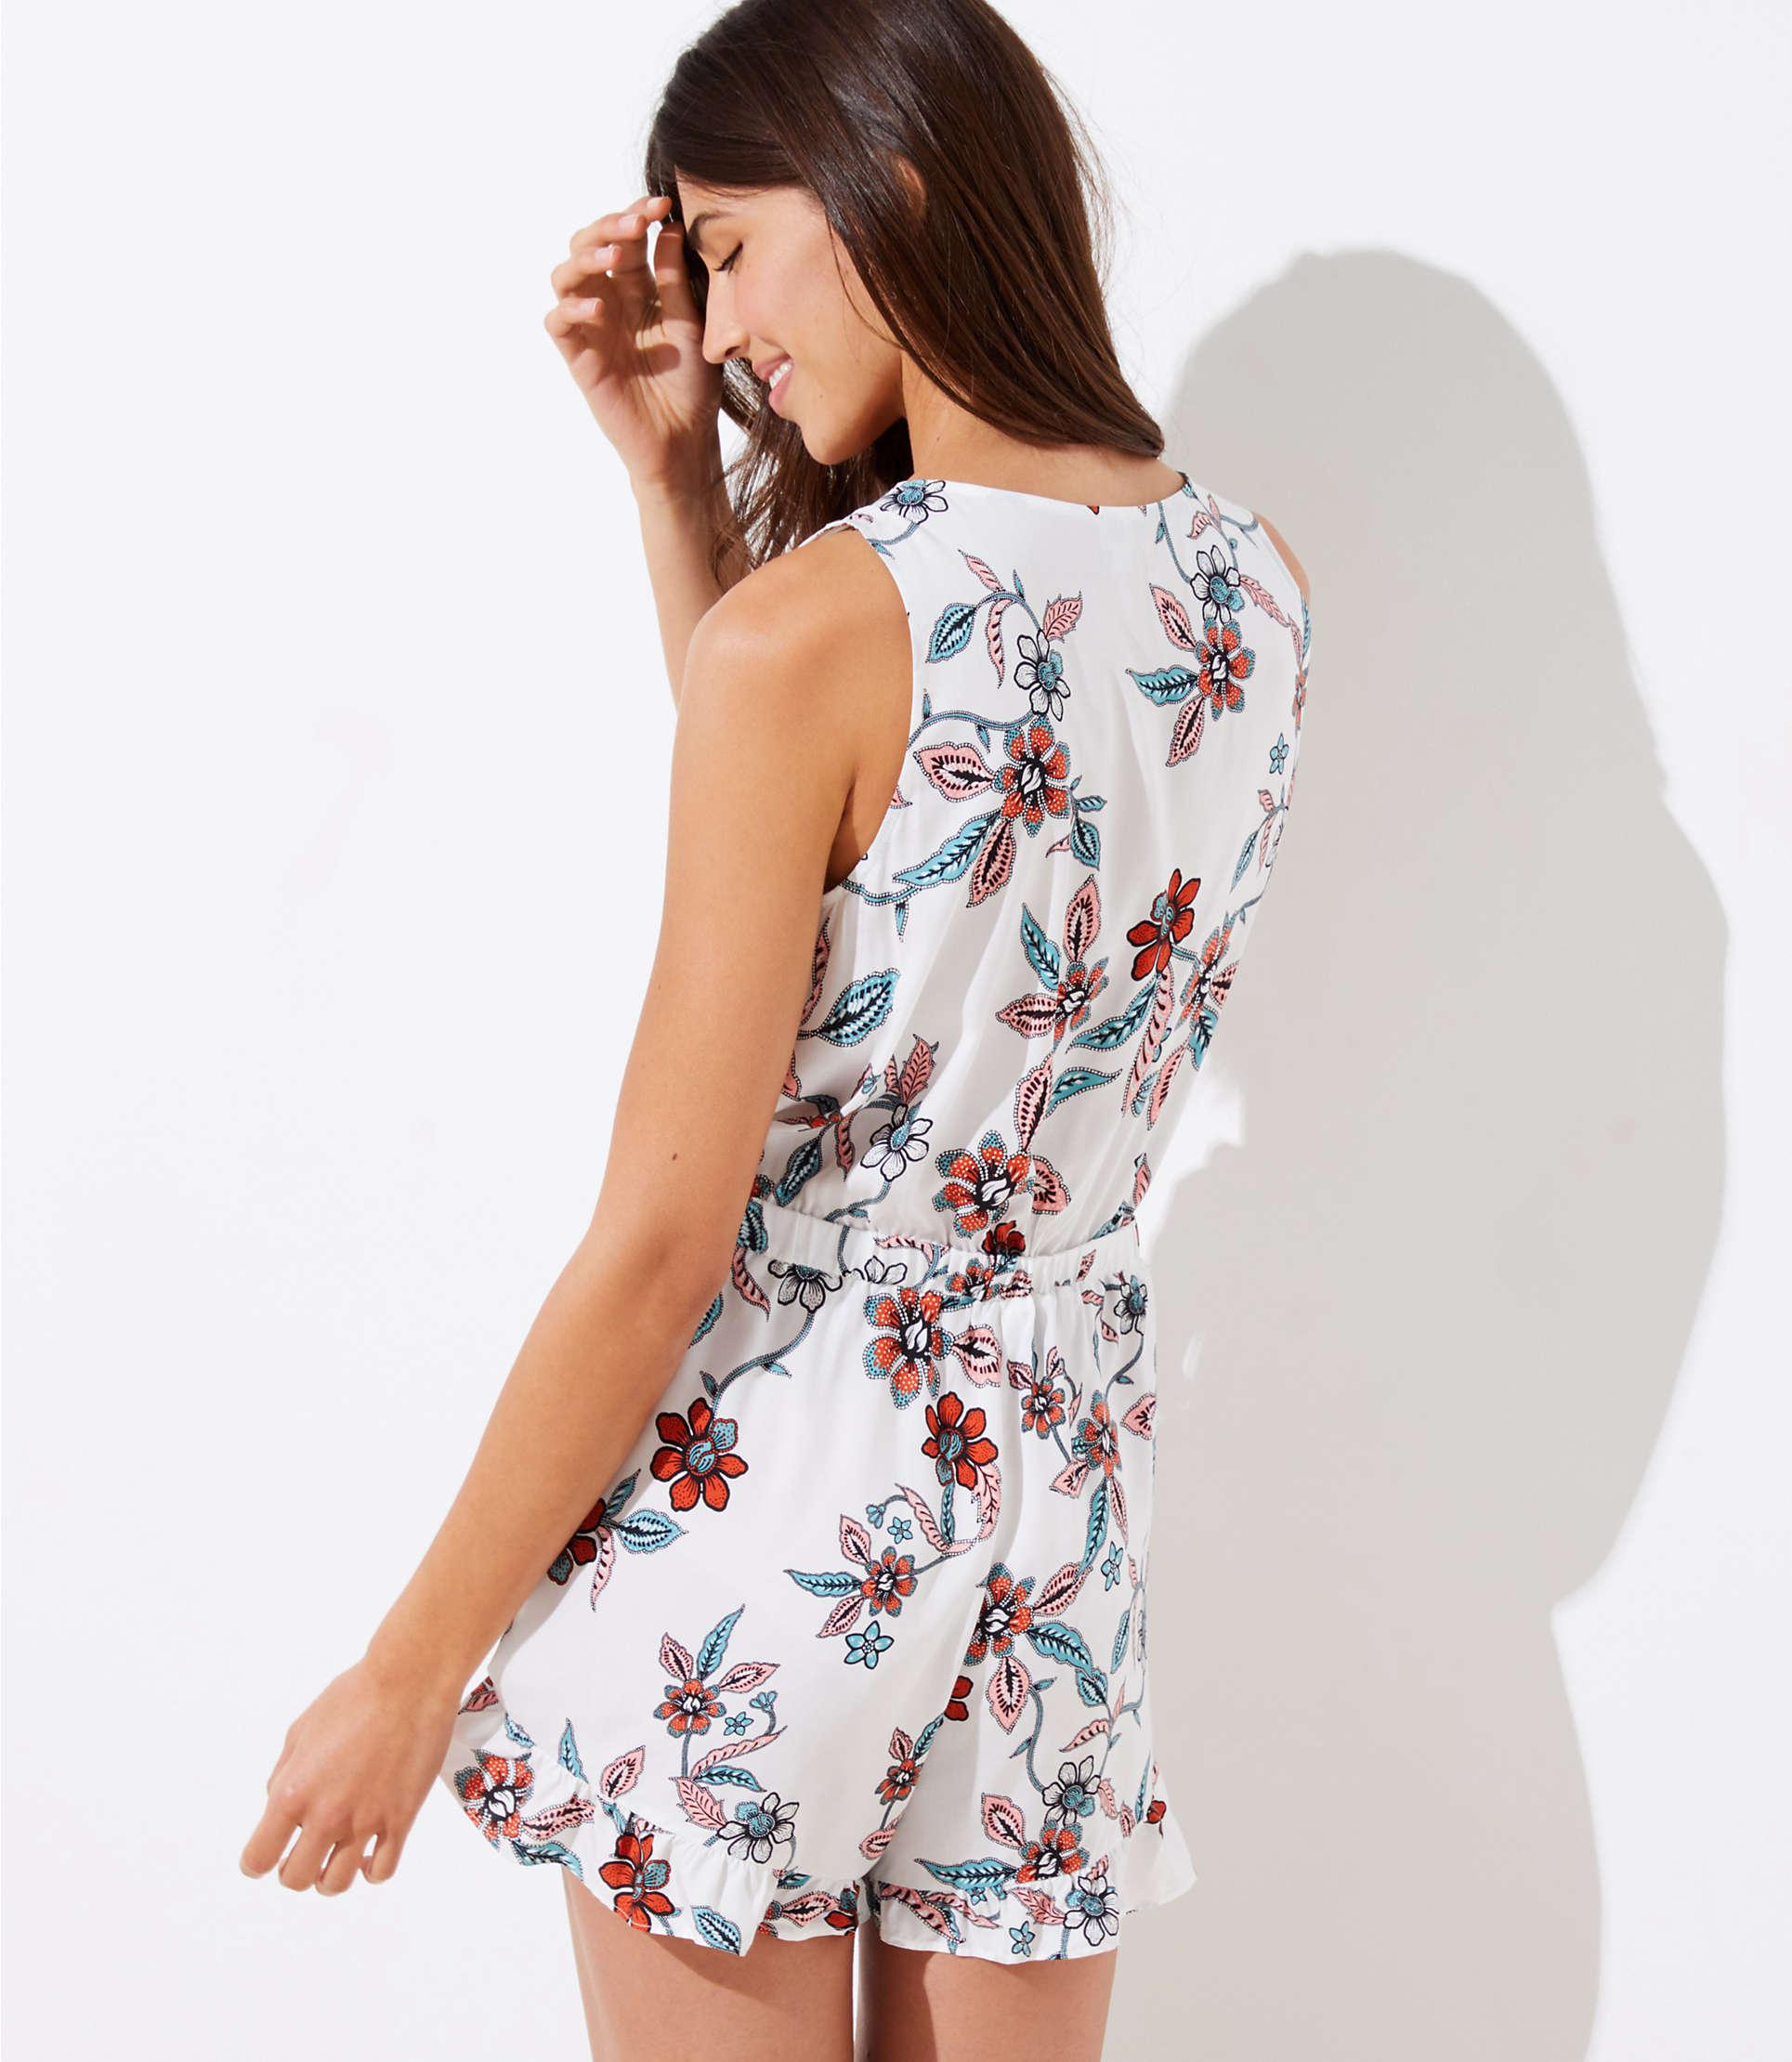 ddb0c81473a Lyst - LOFT Beach Floral Tie Front Romper in White